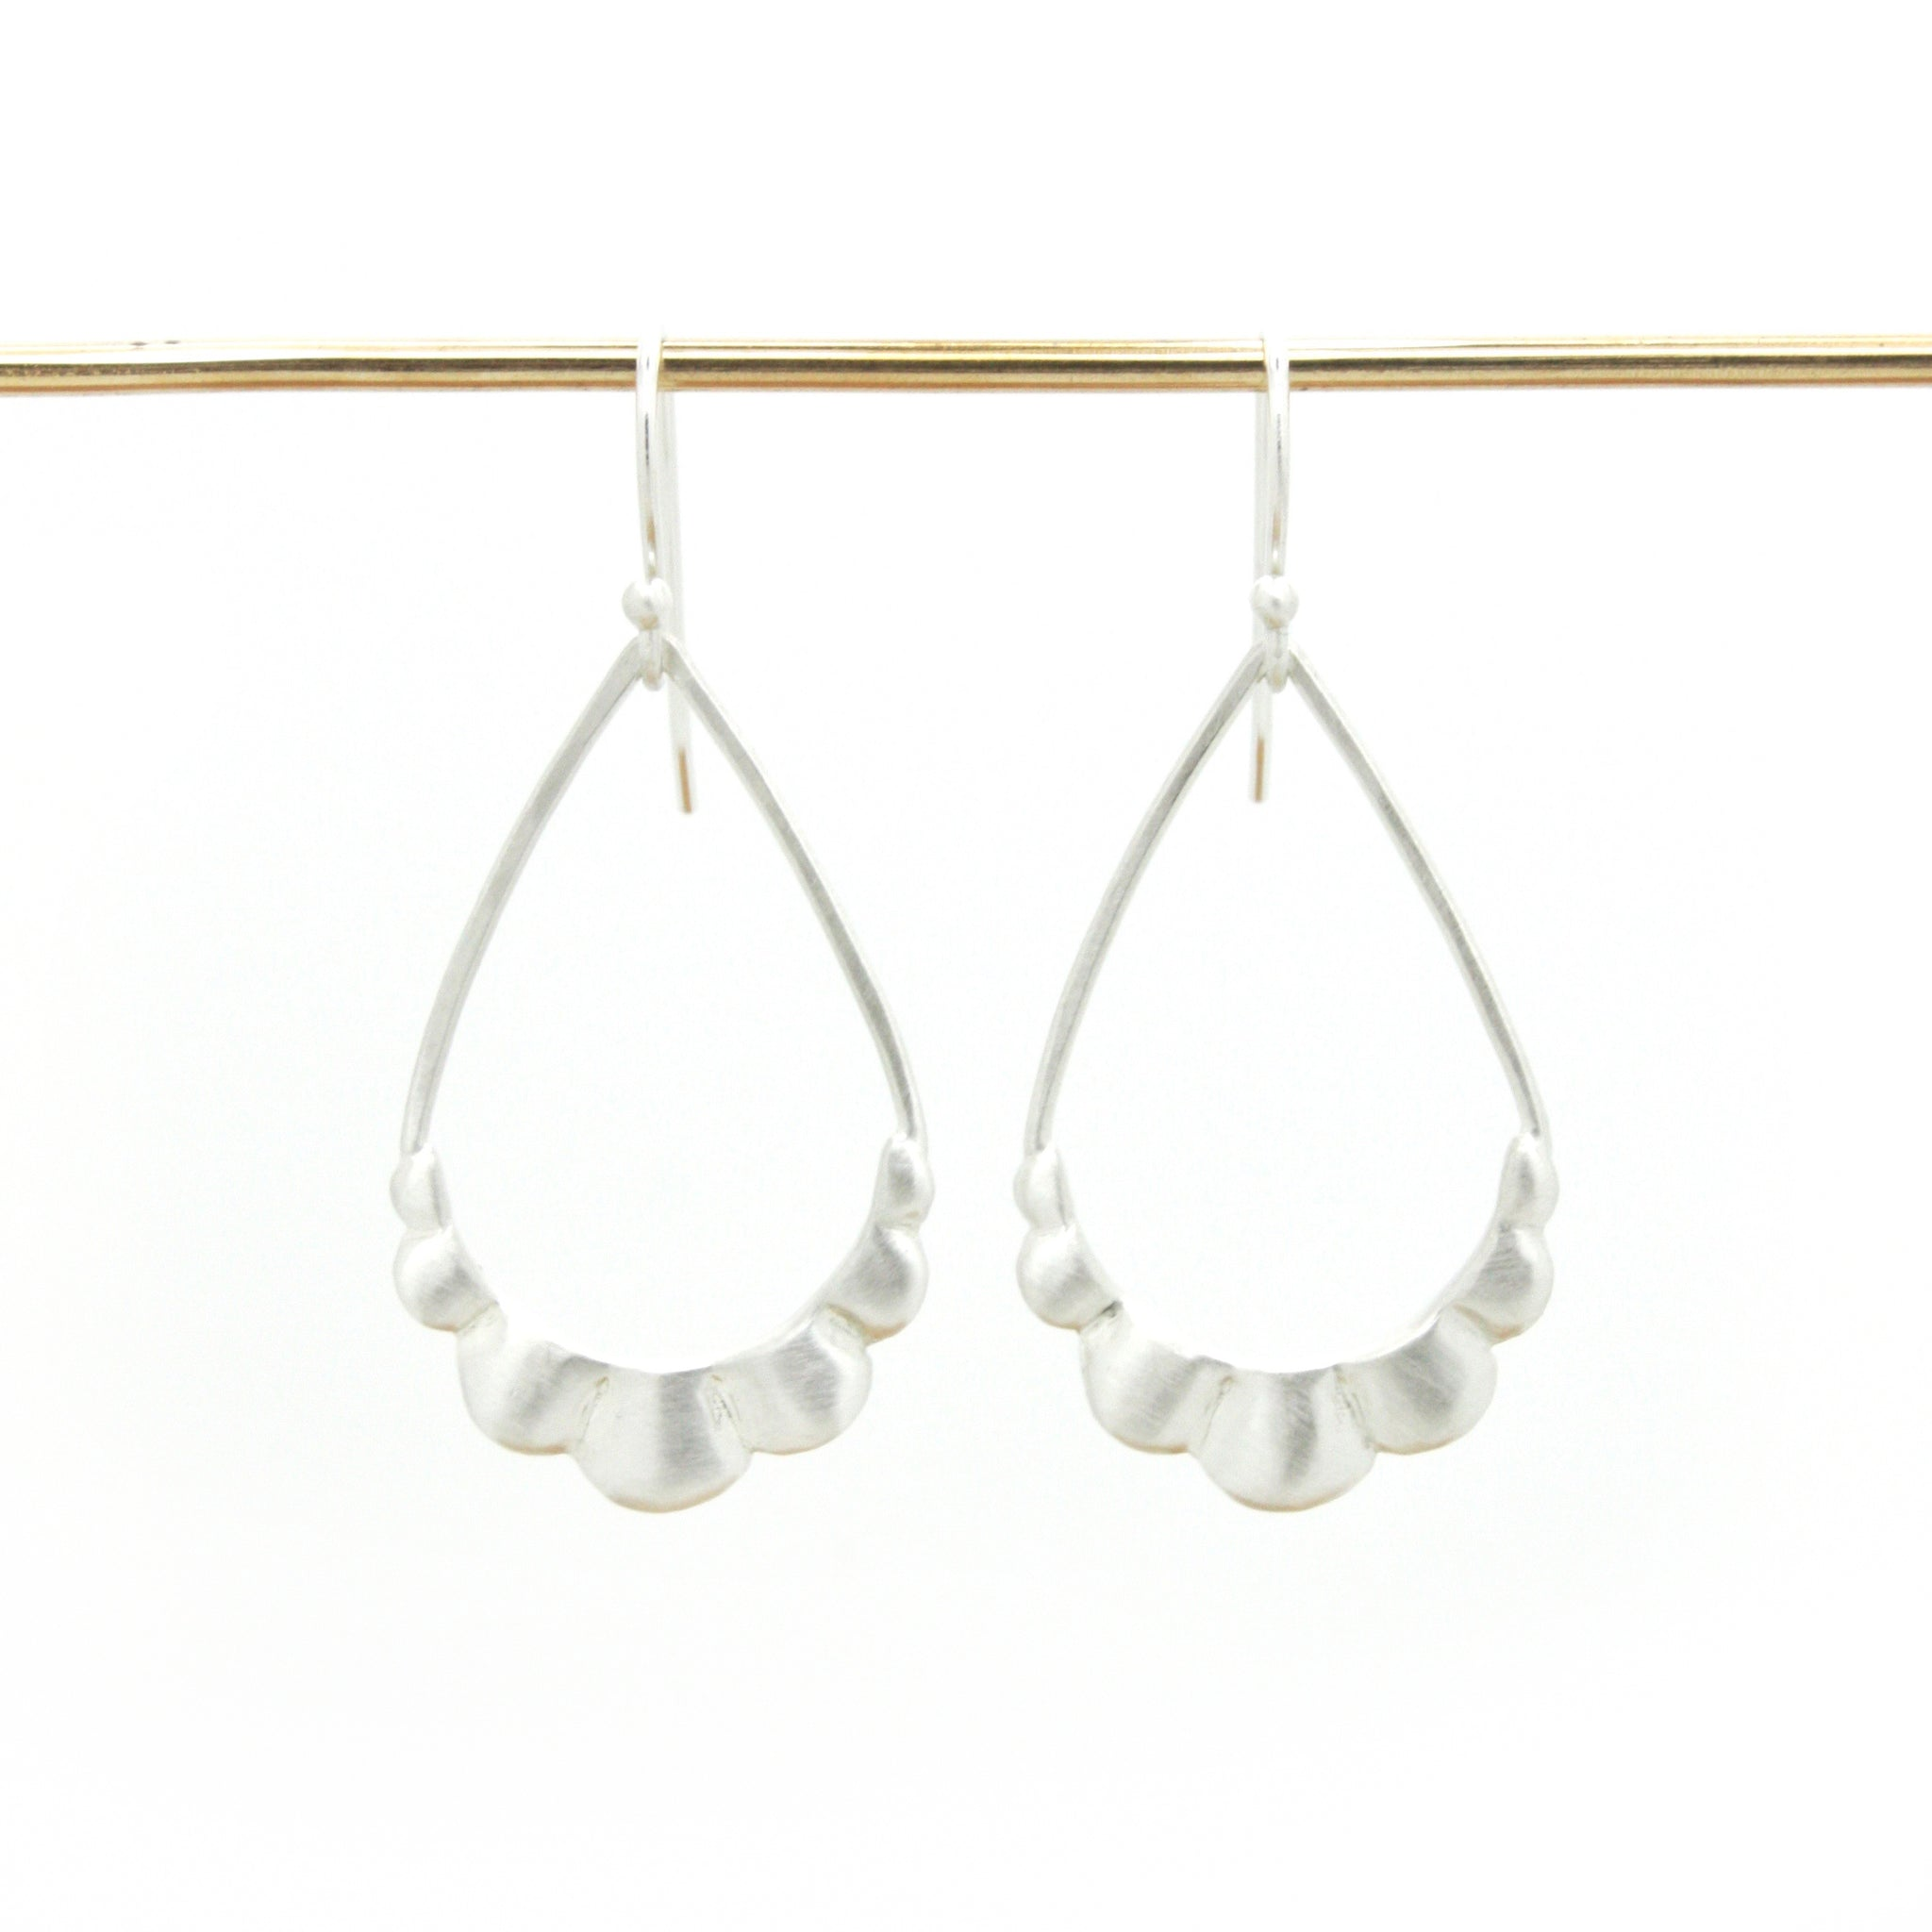 Scallop Earrings | Bright Silver